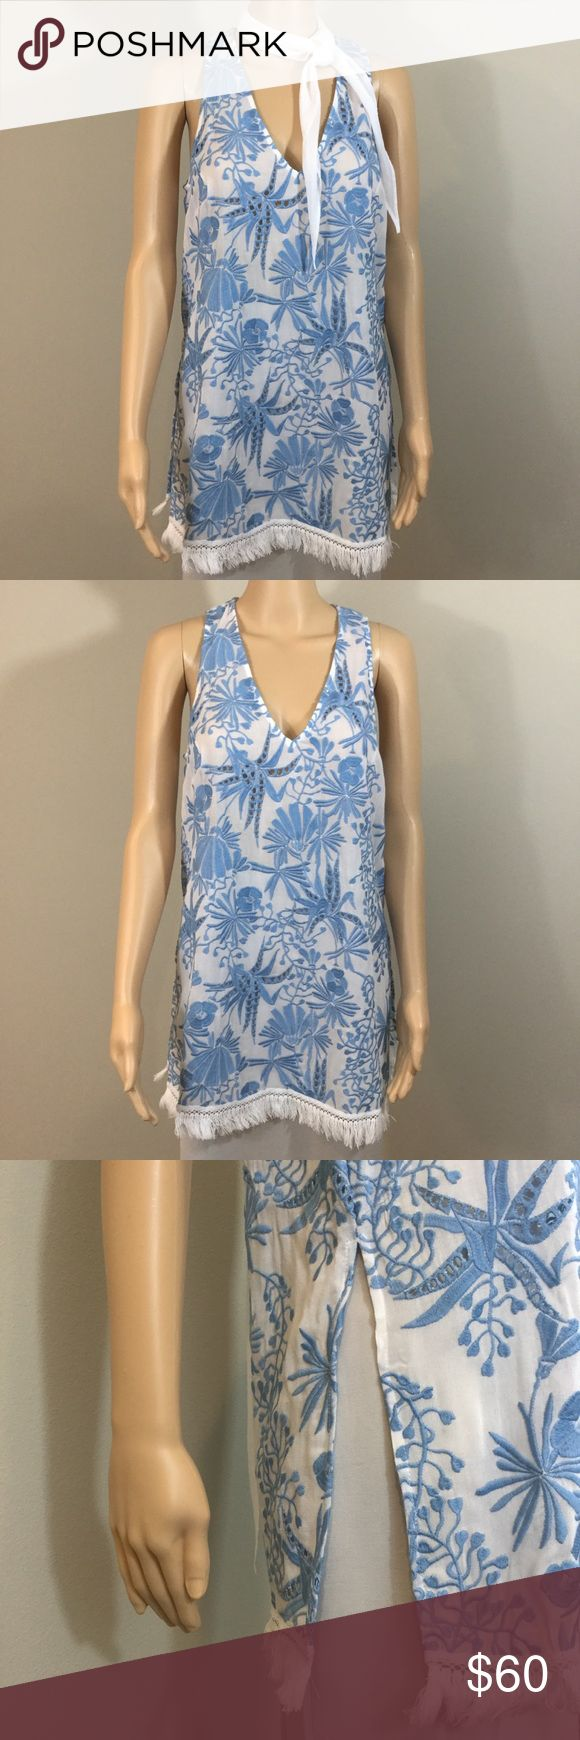 Fifteen Twenty Light Blue Embroidered Tunic Fifteen Twenty light blue embroidered sleeveless tunic with pom poms along the bottom and slits along the sides. New with tags, never worn. Fifteen Twenty Tops Tunics